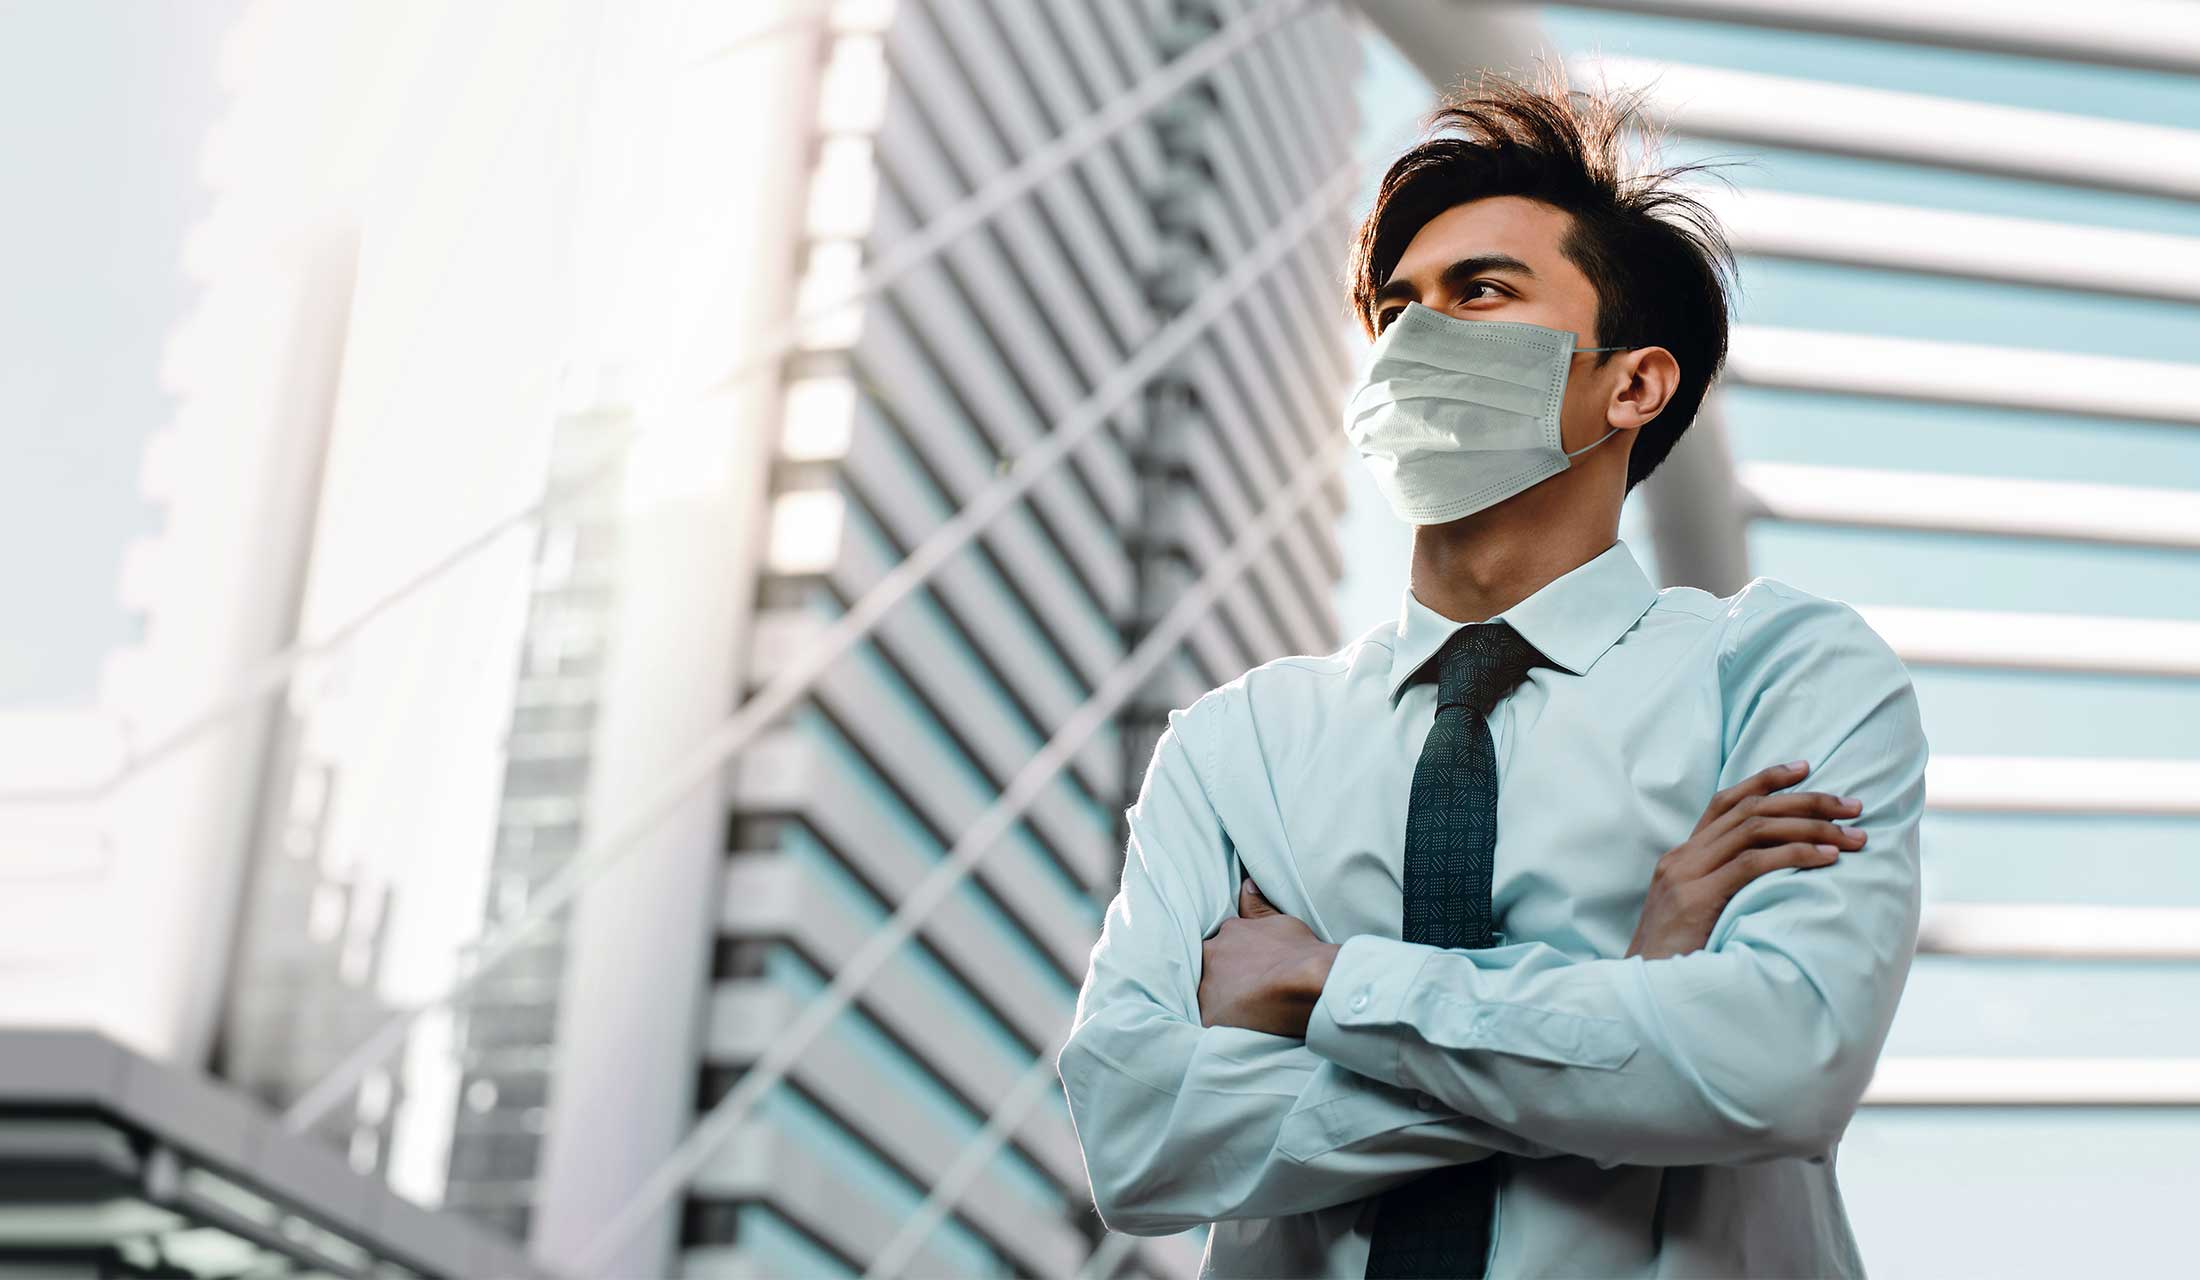 Business man wearing Covid mask looking reflective